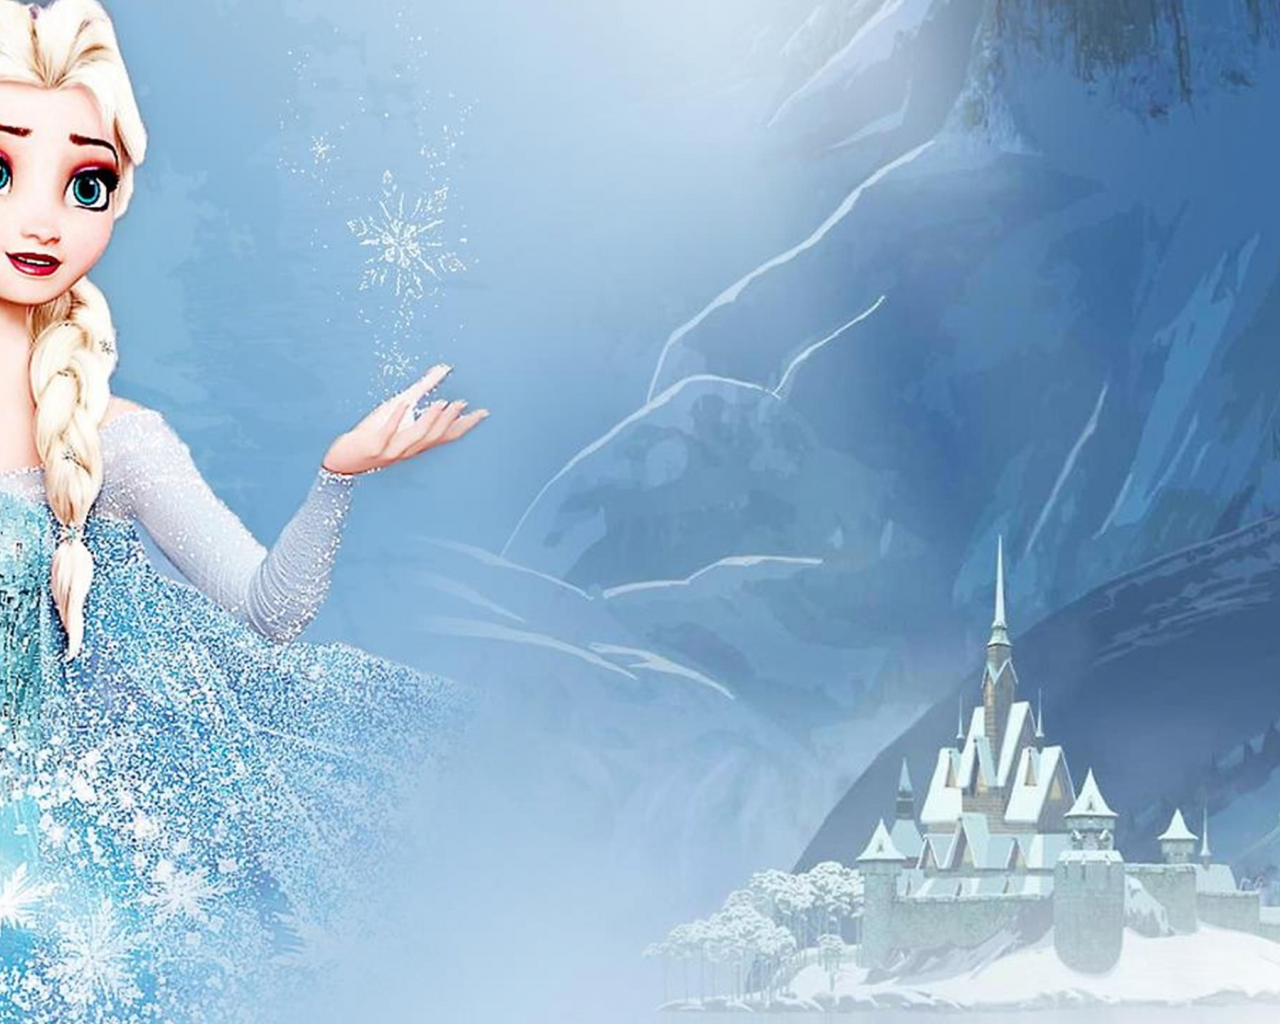 Pin By Diana Watson On Christmas: Free Download Pin By Diana Watson On Anime Frozen